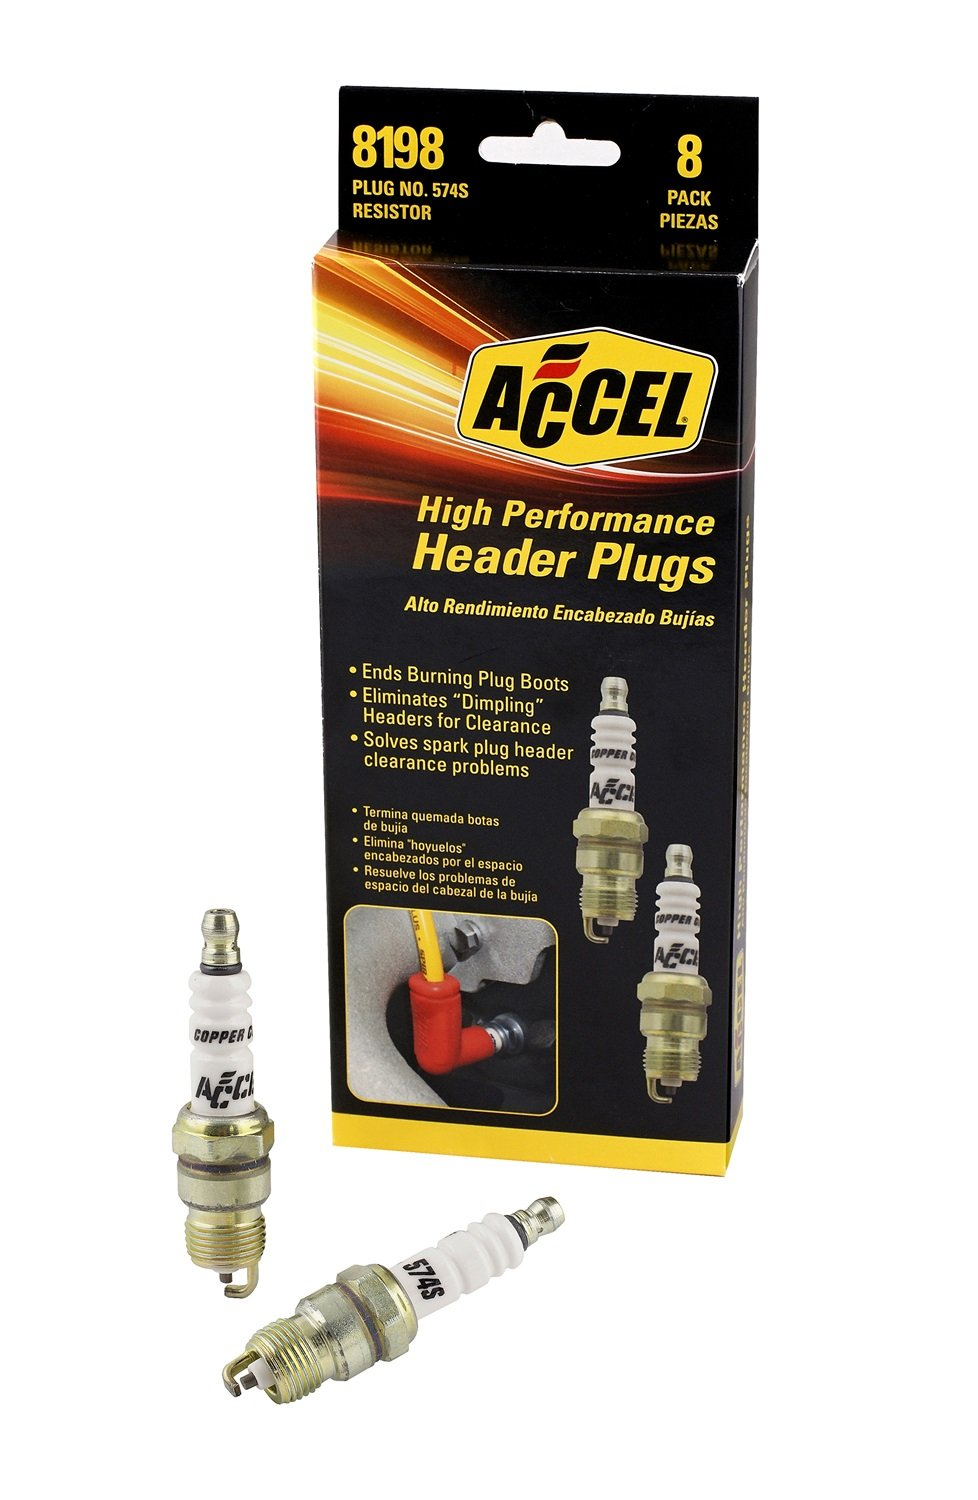 ACCEL 8198 Performance U-Groove Header Spark Plug - Pack of 8 by ACCEL